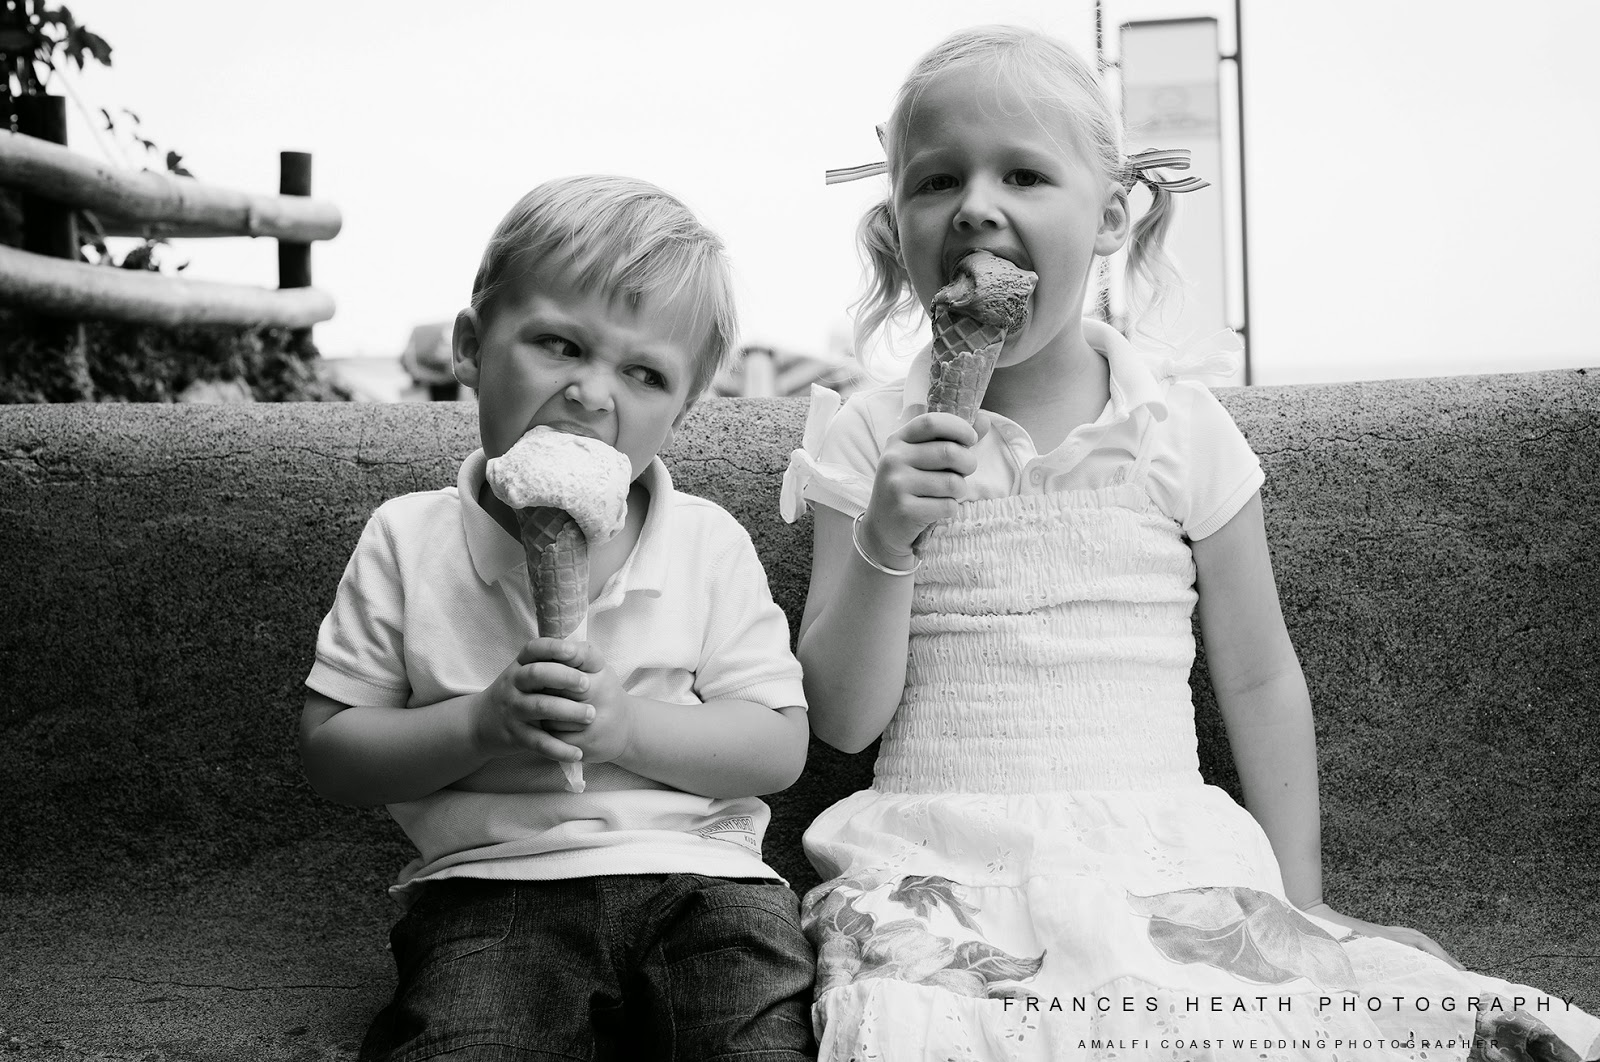 Children's portrait with ice cream cones